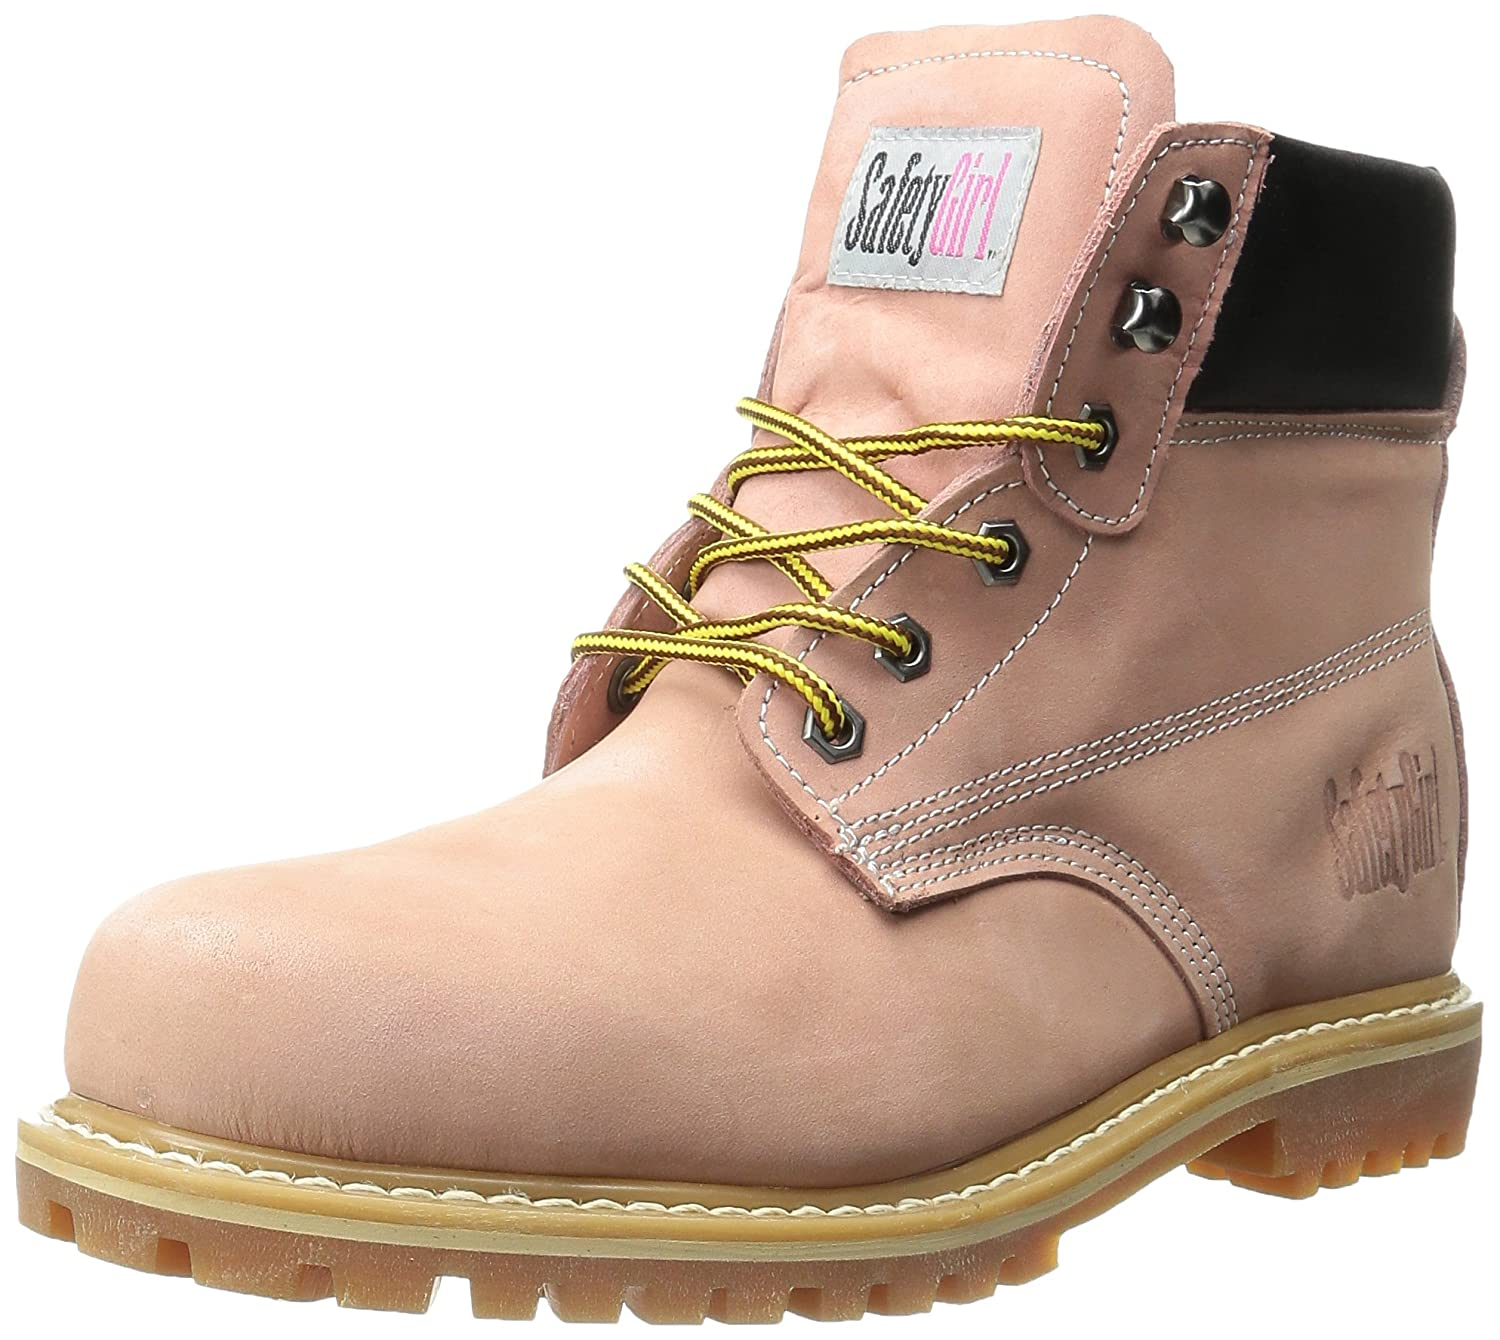 安全Girl II Steel Toe Waterproof Womens Work Boots – ライトピンク   9 C/D US B00MJ34Y3A